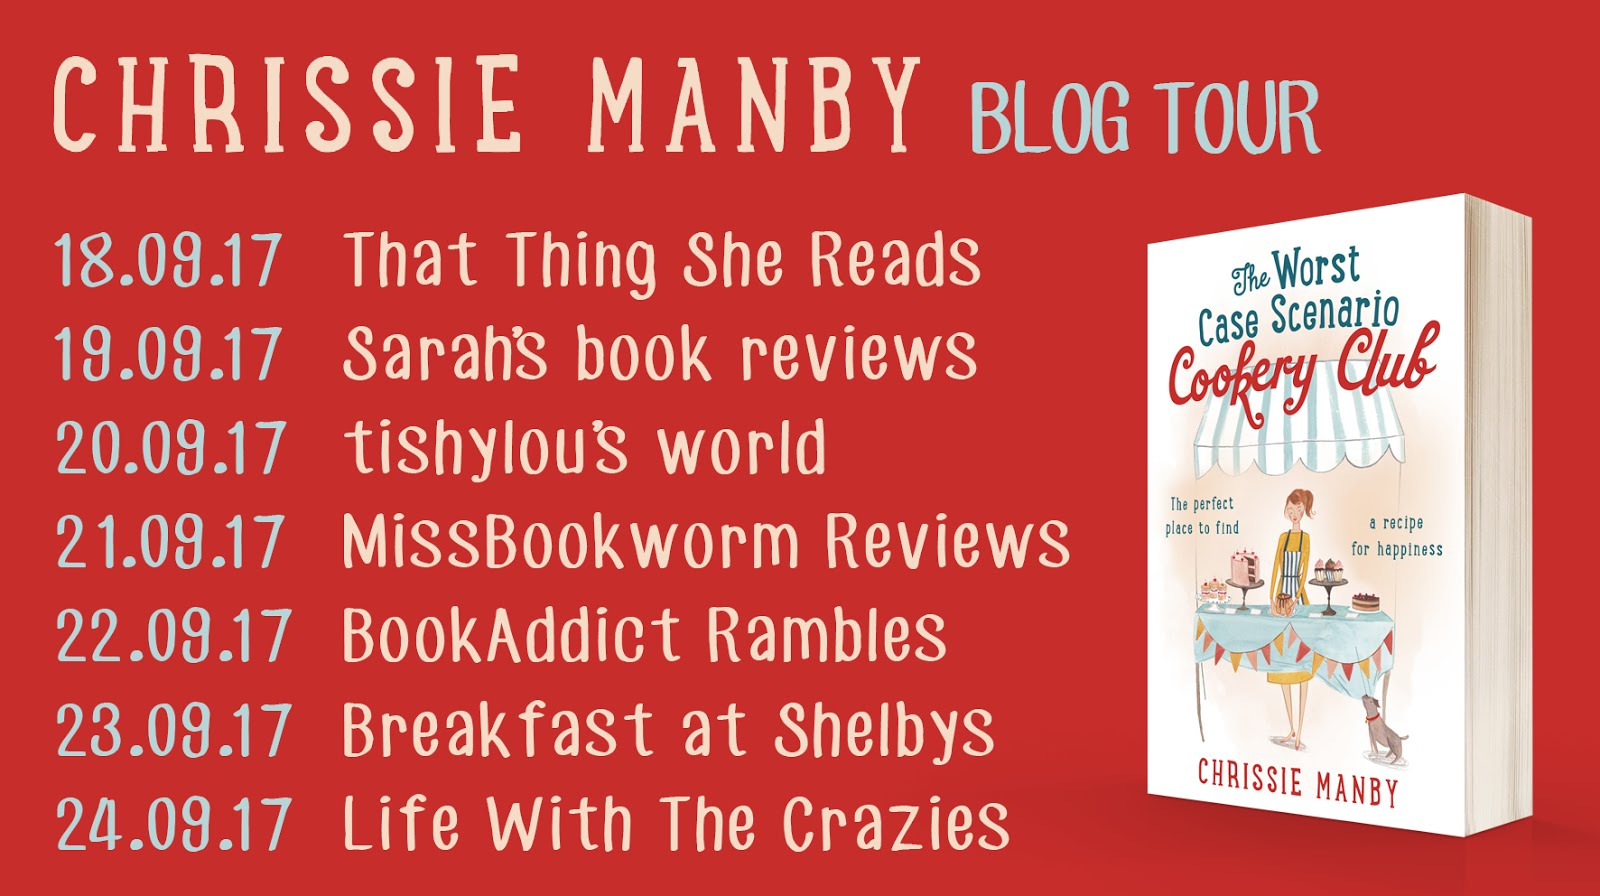 Blog Tour: The Worst Case Scenerio Cookery Club